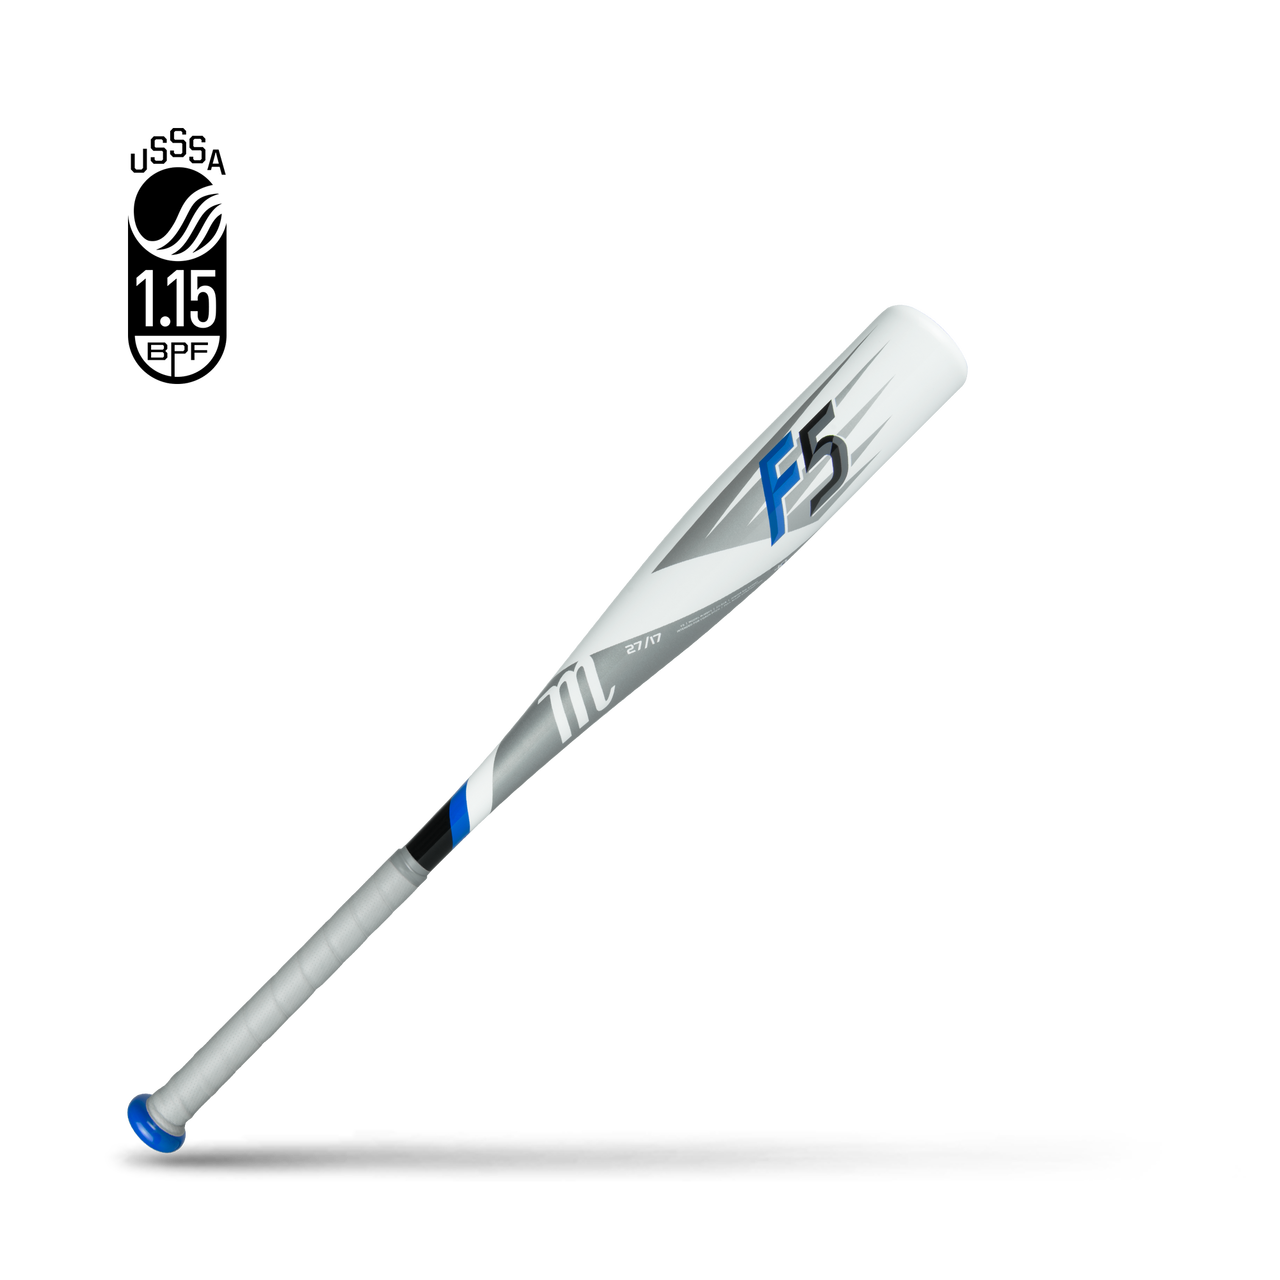 Marucci F5 Junior Big Barrel -10 Baseball Bat